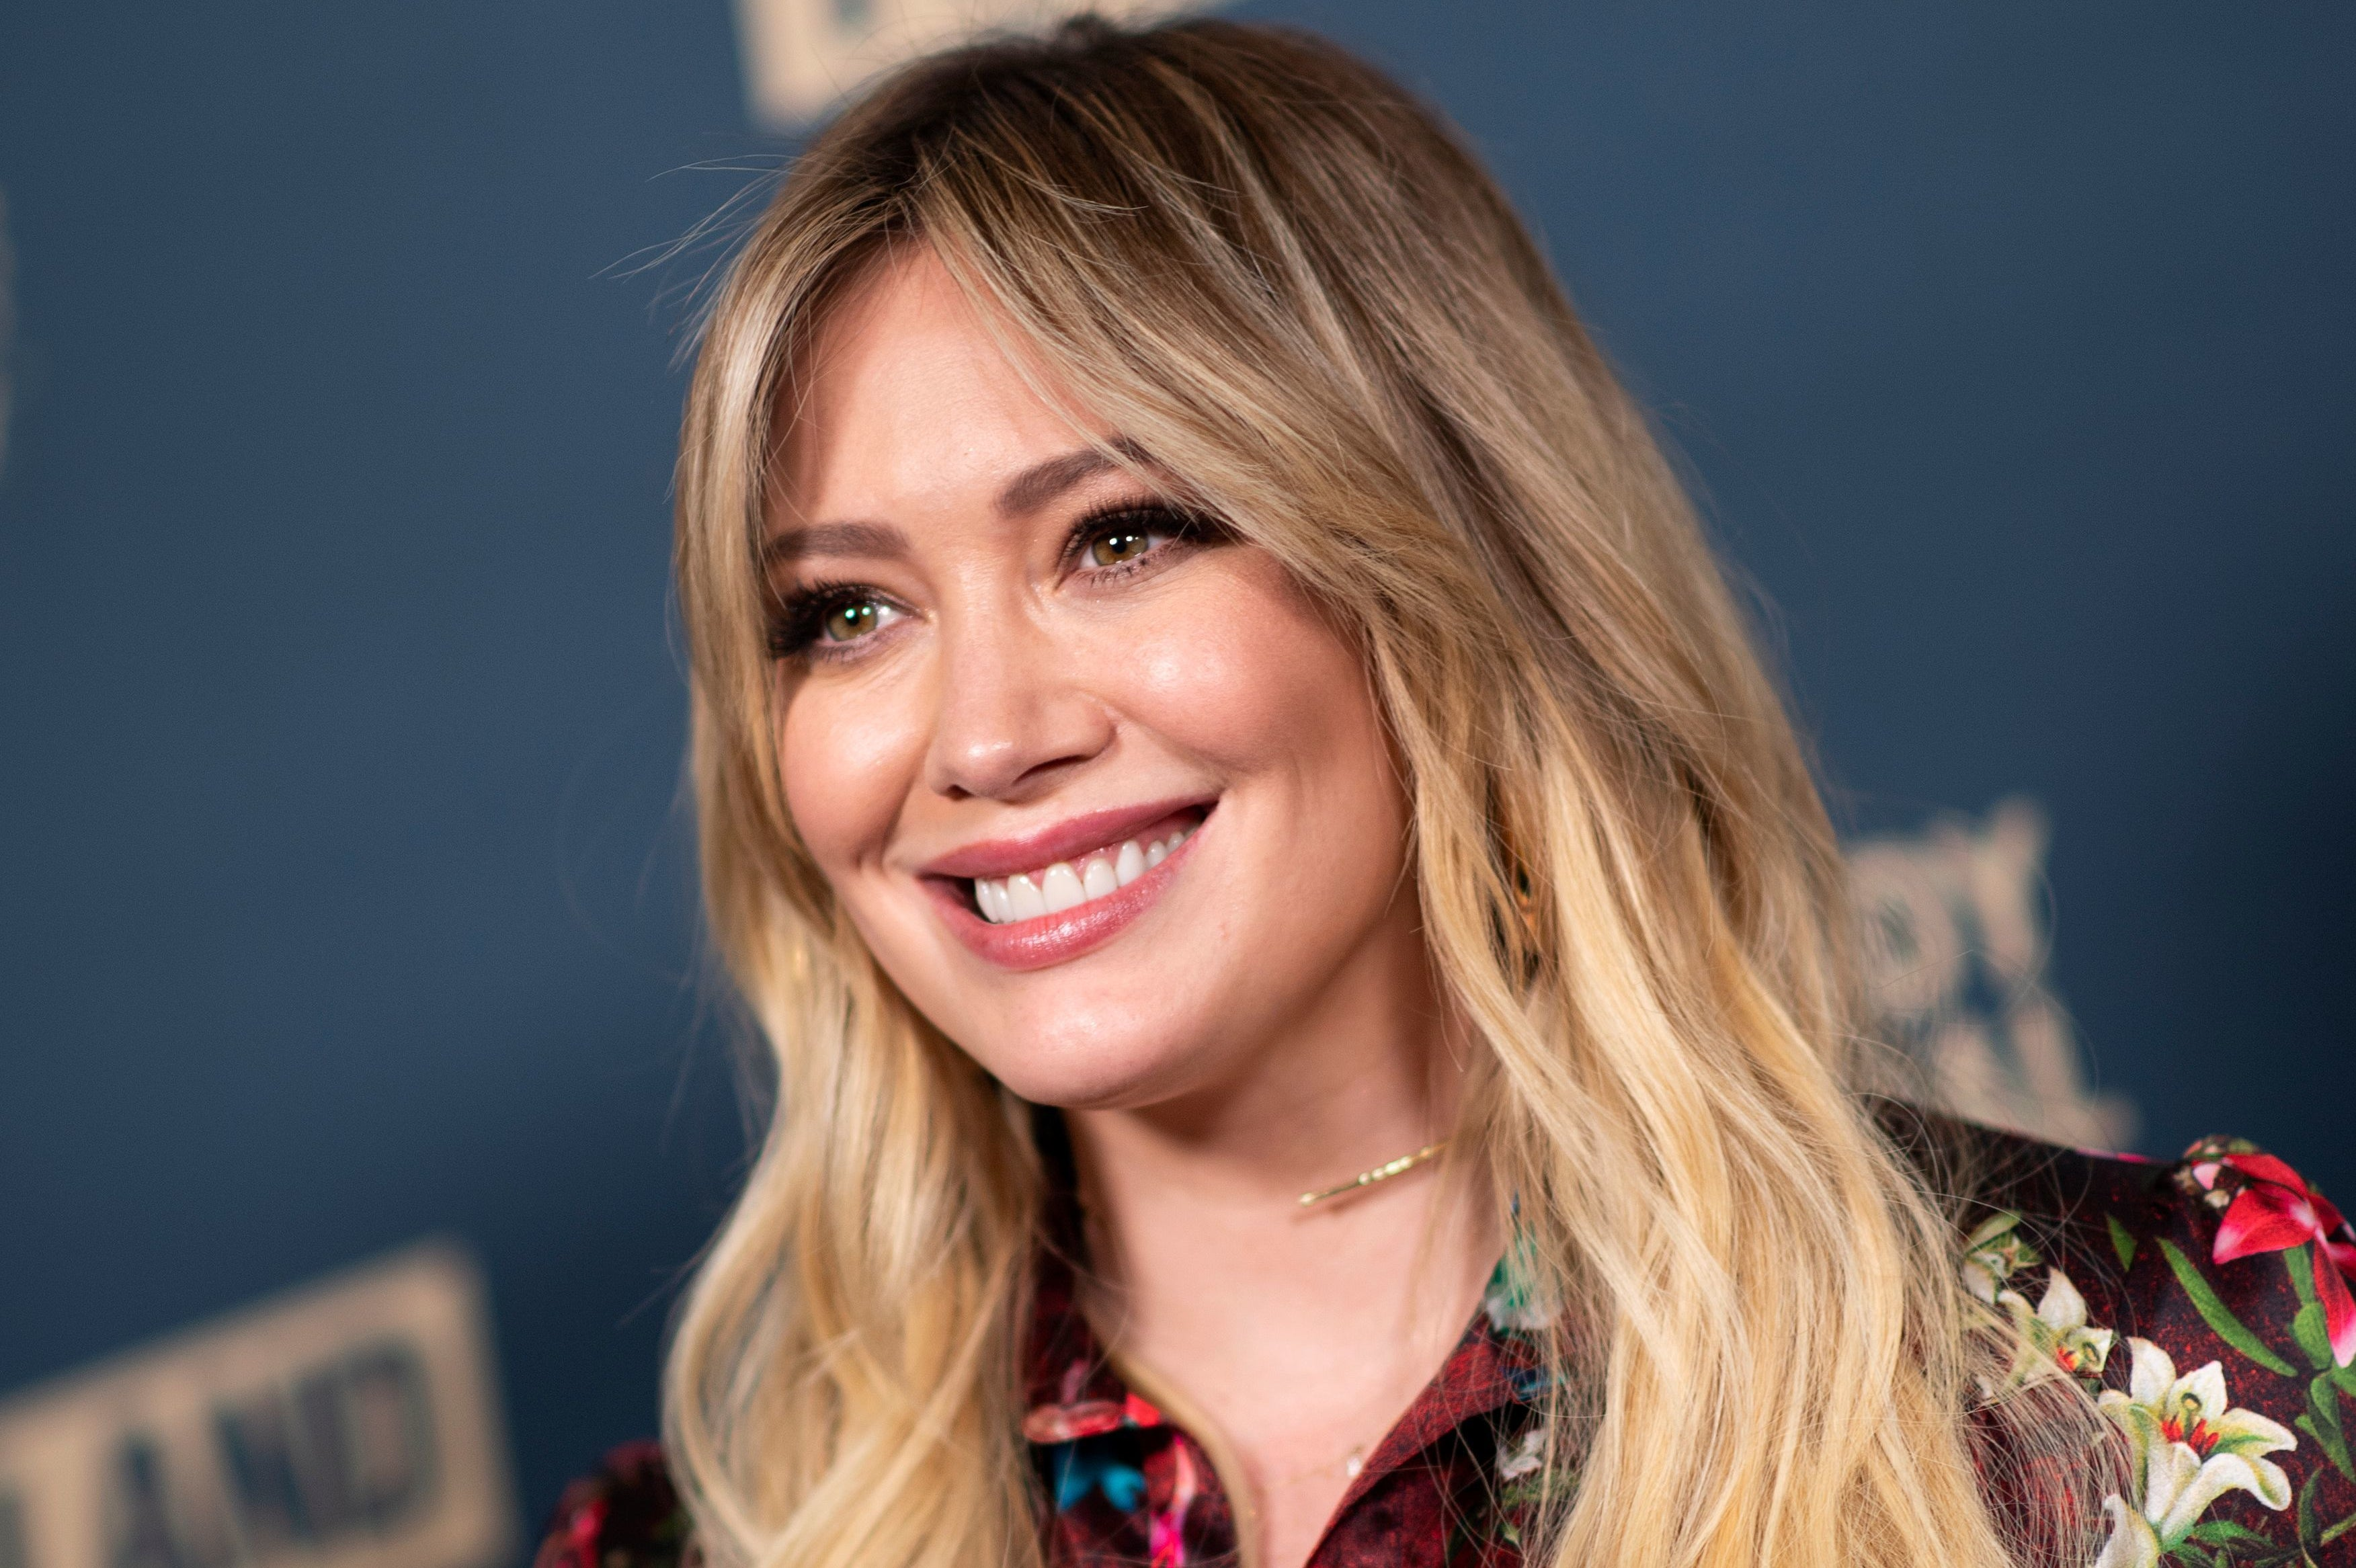 Hilary Duff Opened Up About The Lizzie McGuire Reboot And Gave Some Ideas For New Plot Lines